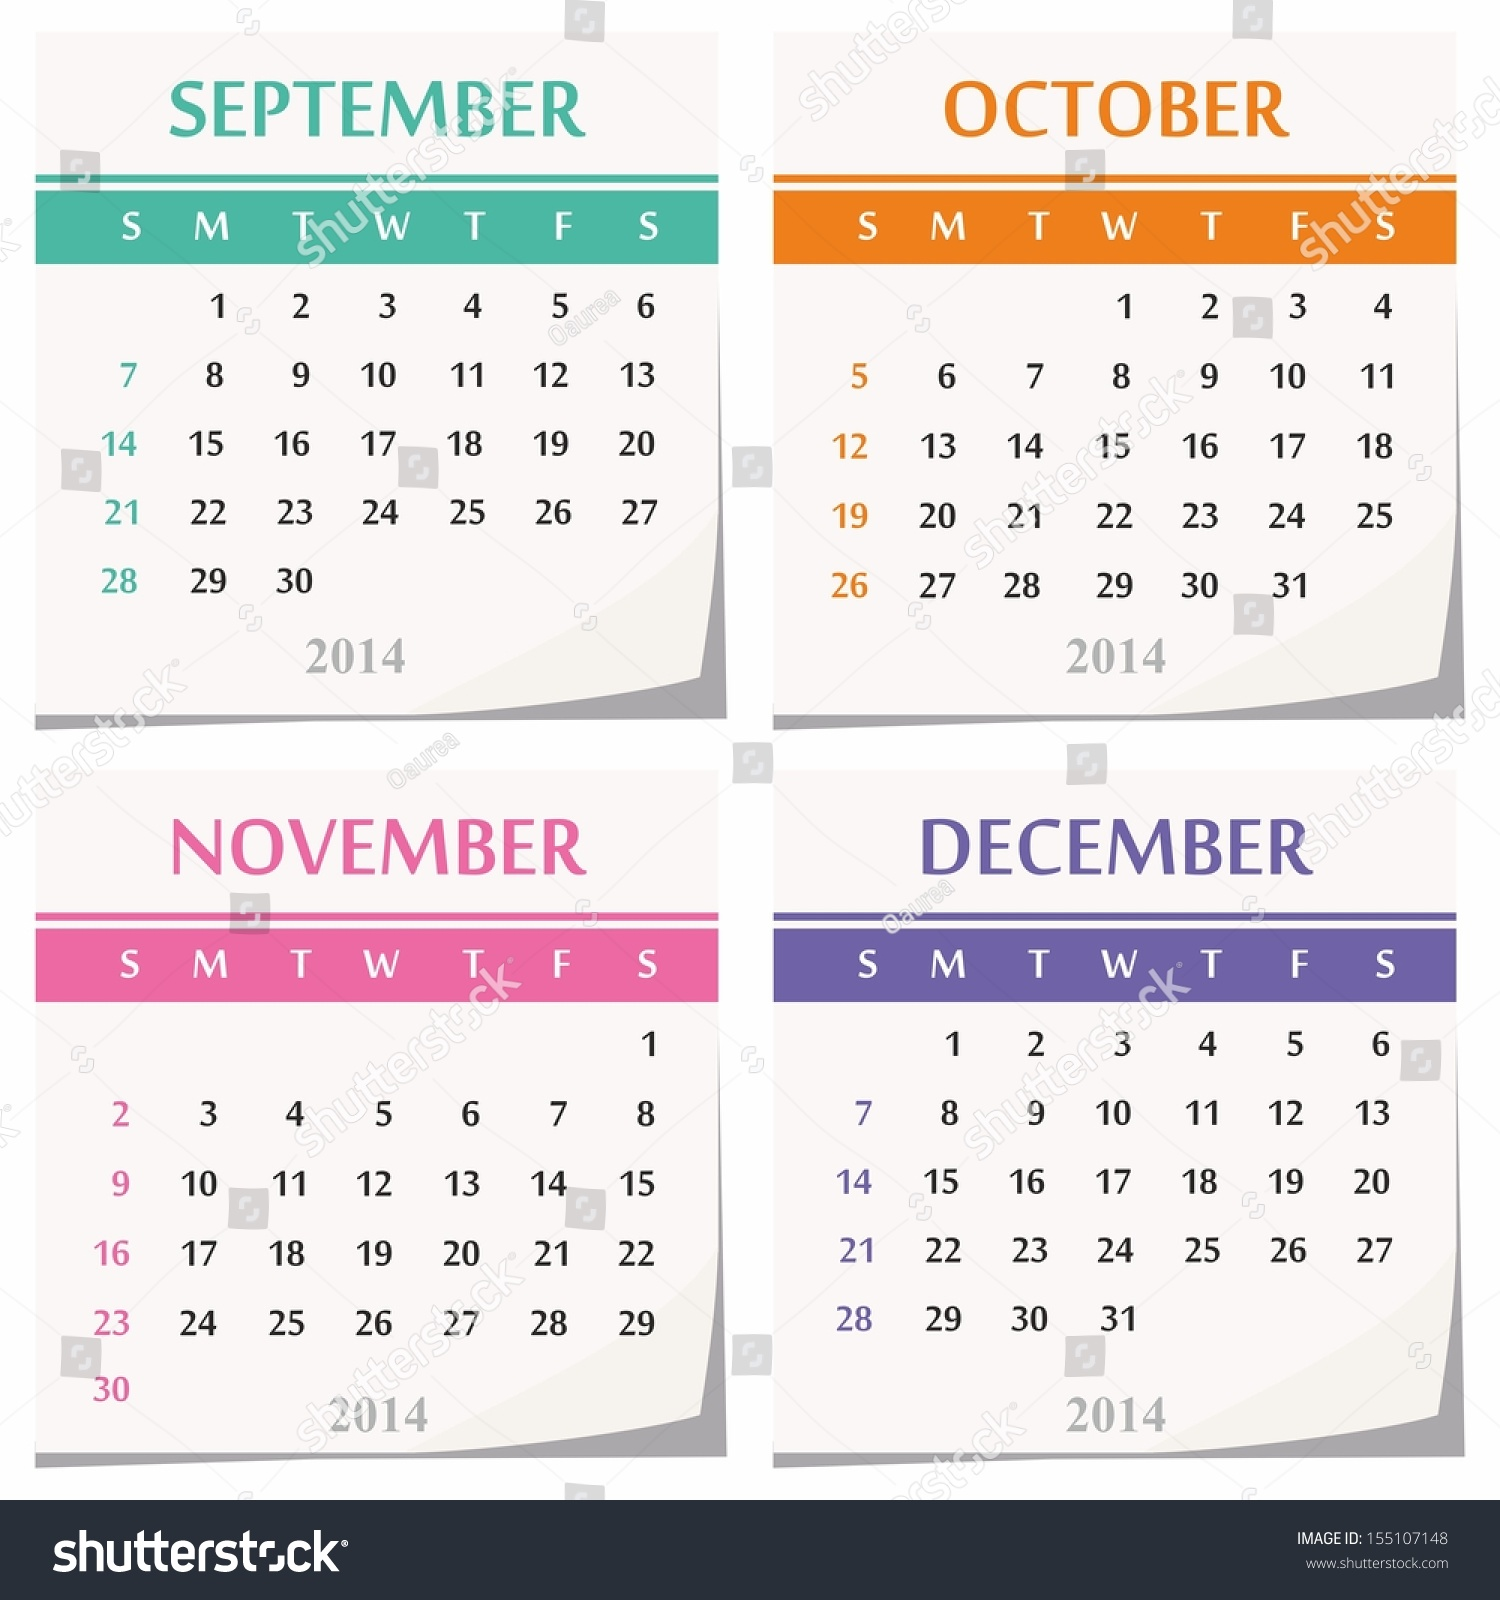 November Calendar Design : Calendar design set four months stock vector